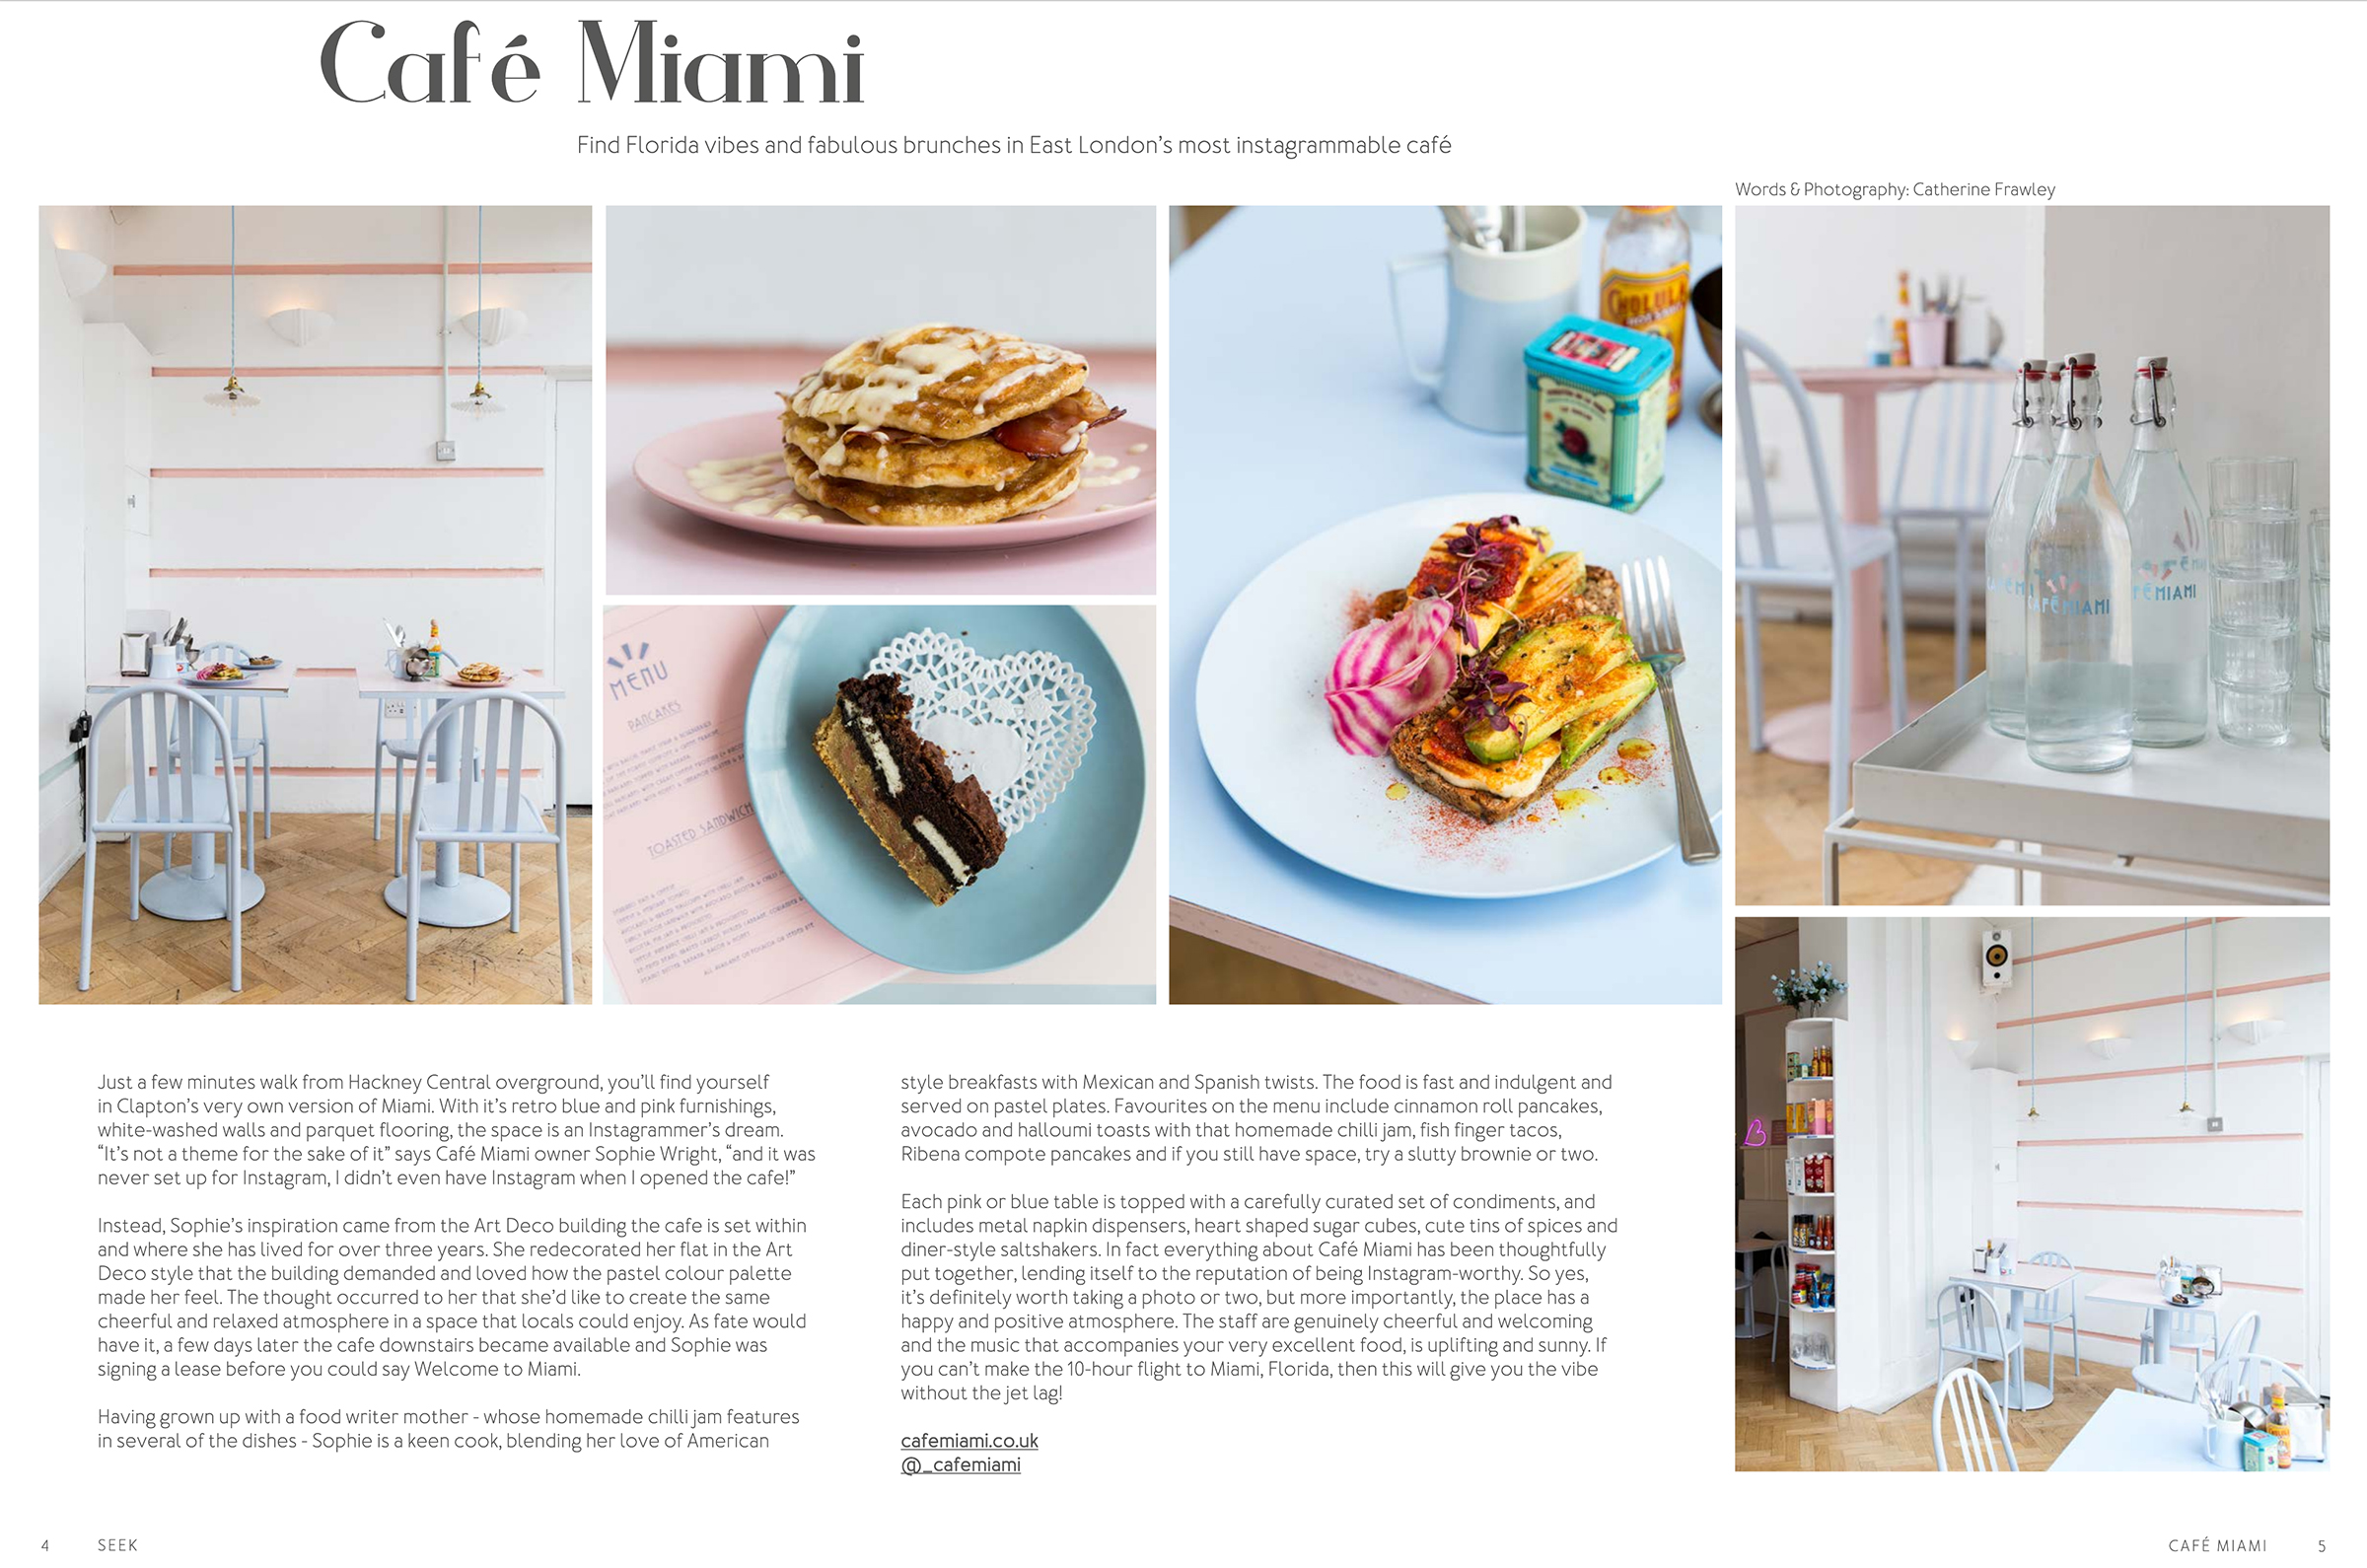 91 Magazine feature of Cafe Miami in Hackney